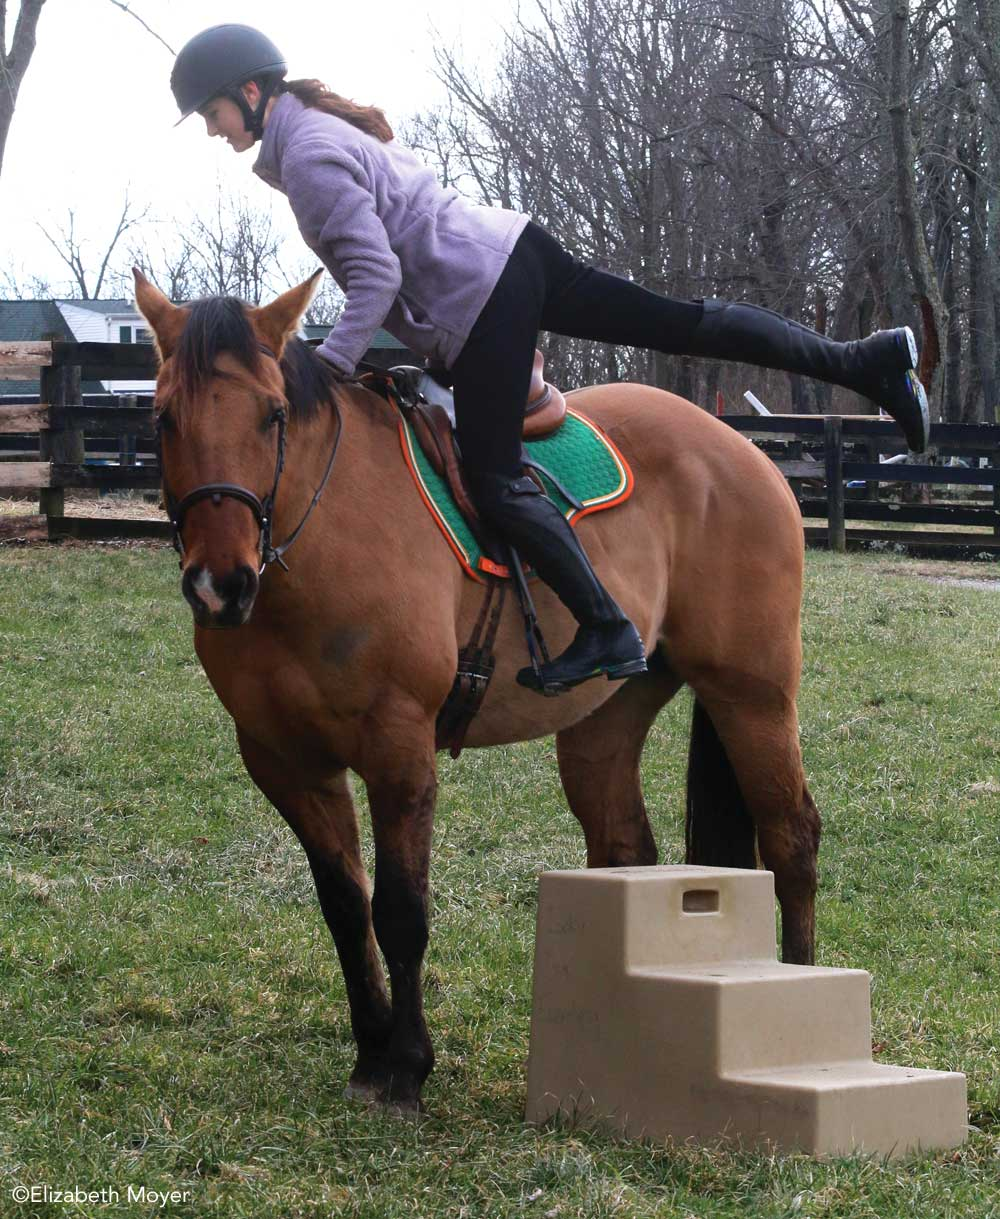 Rider mounting a horse from a mounting block